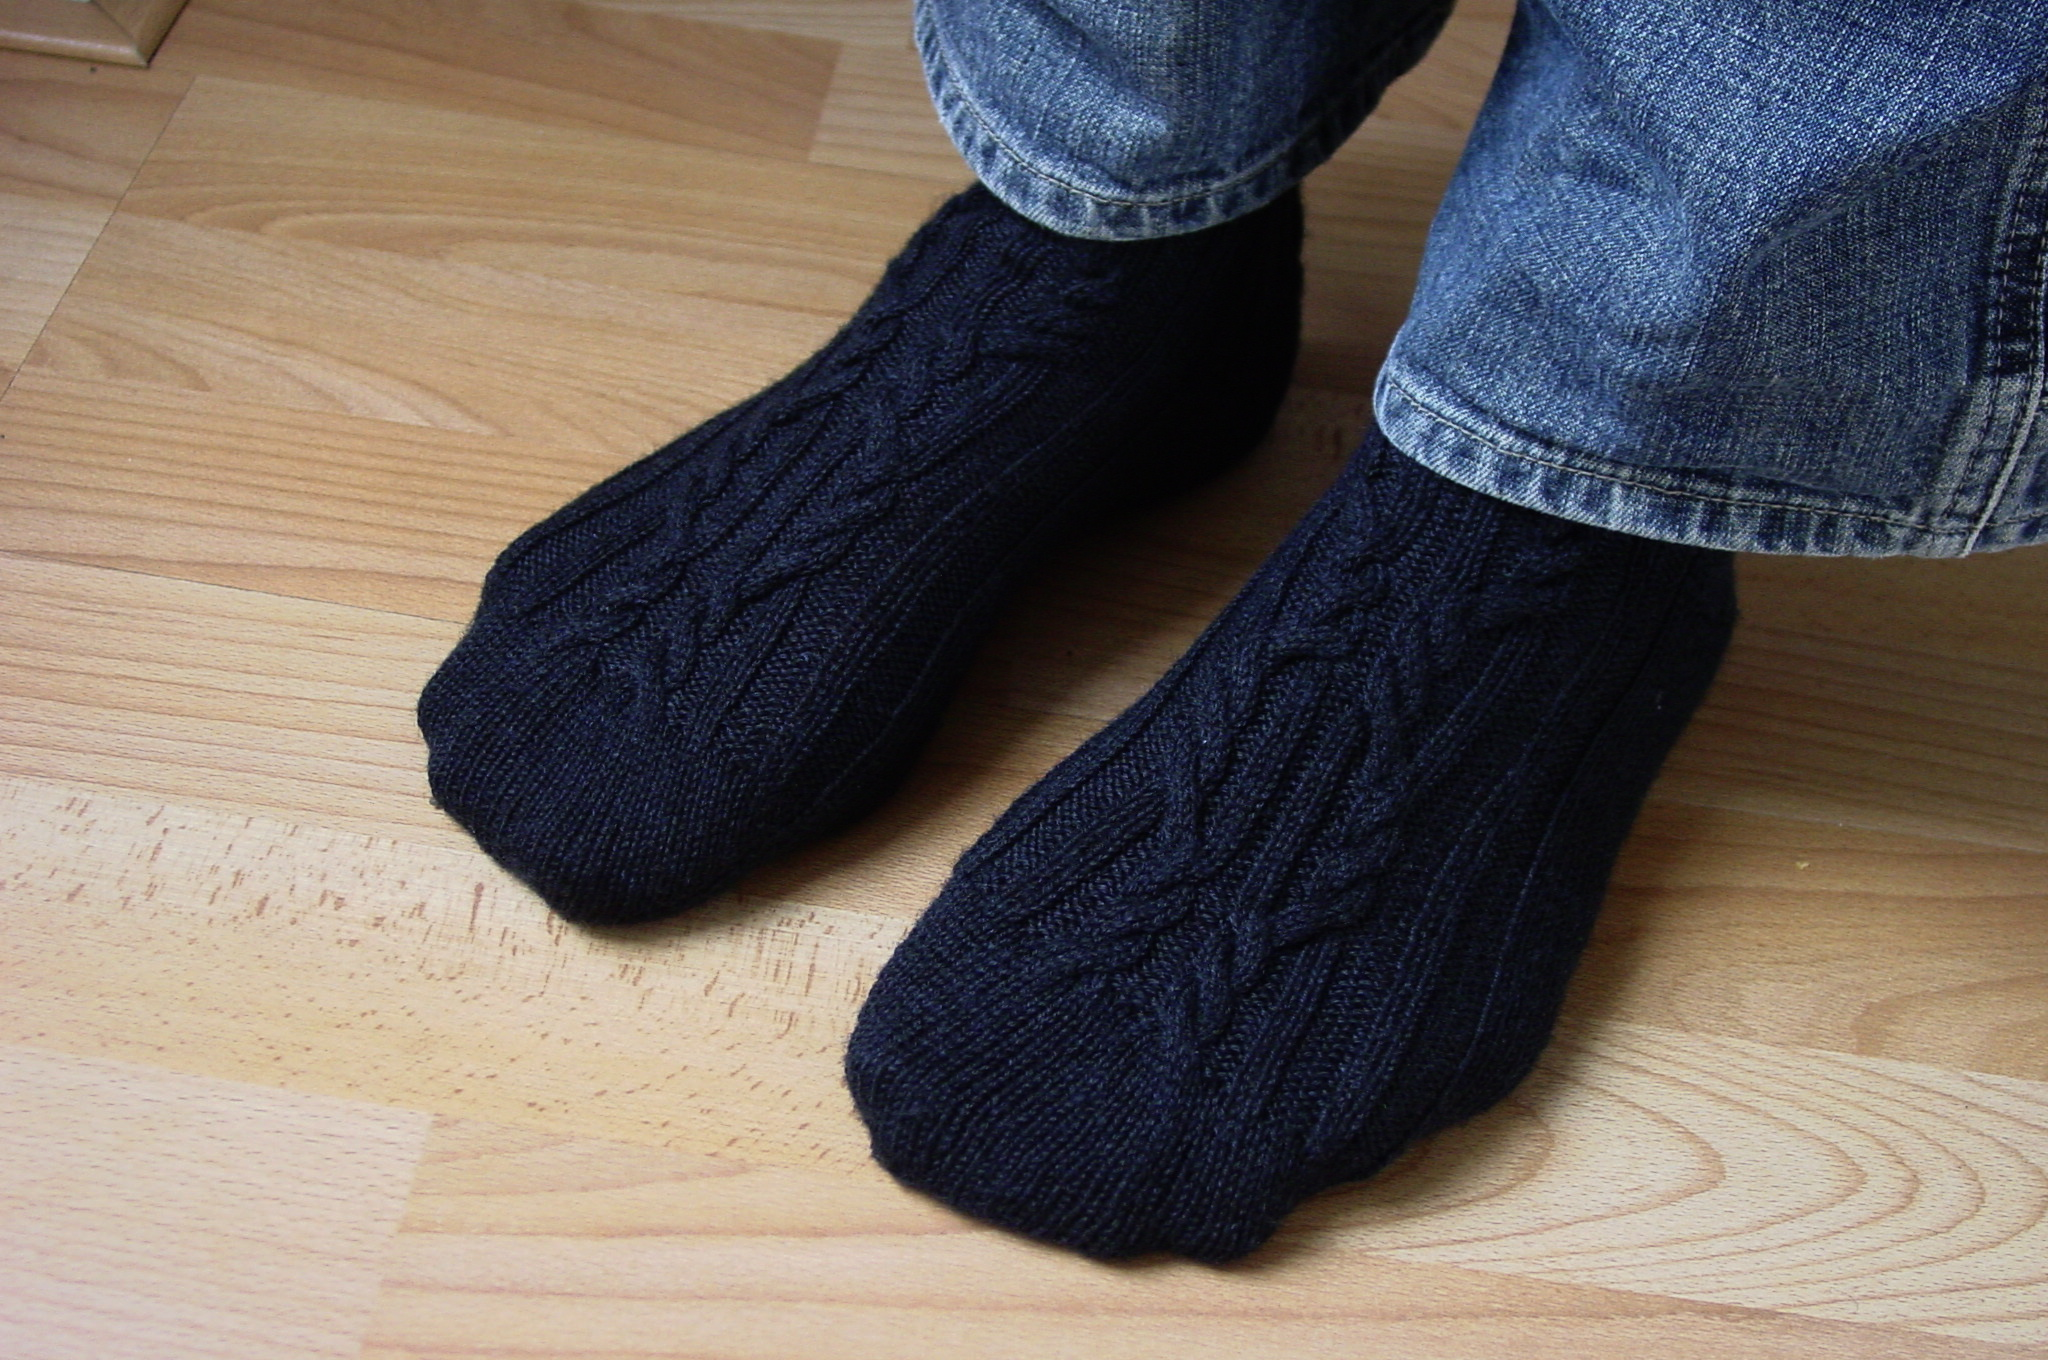 How to Overcome Cold Feet